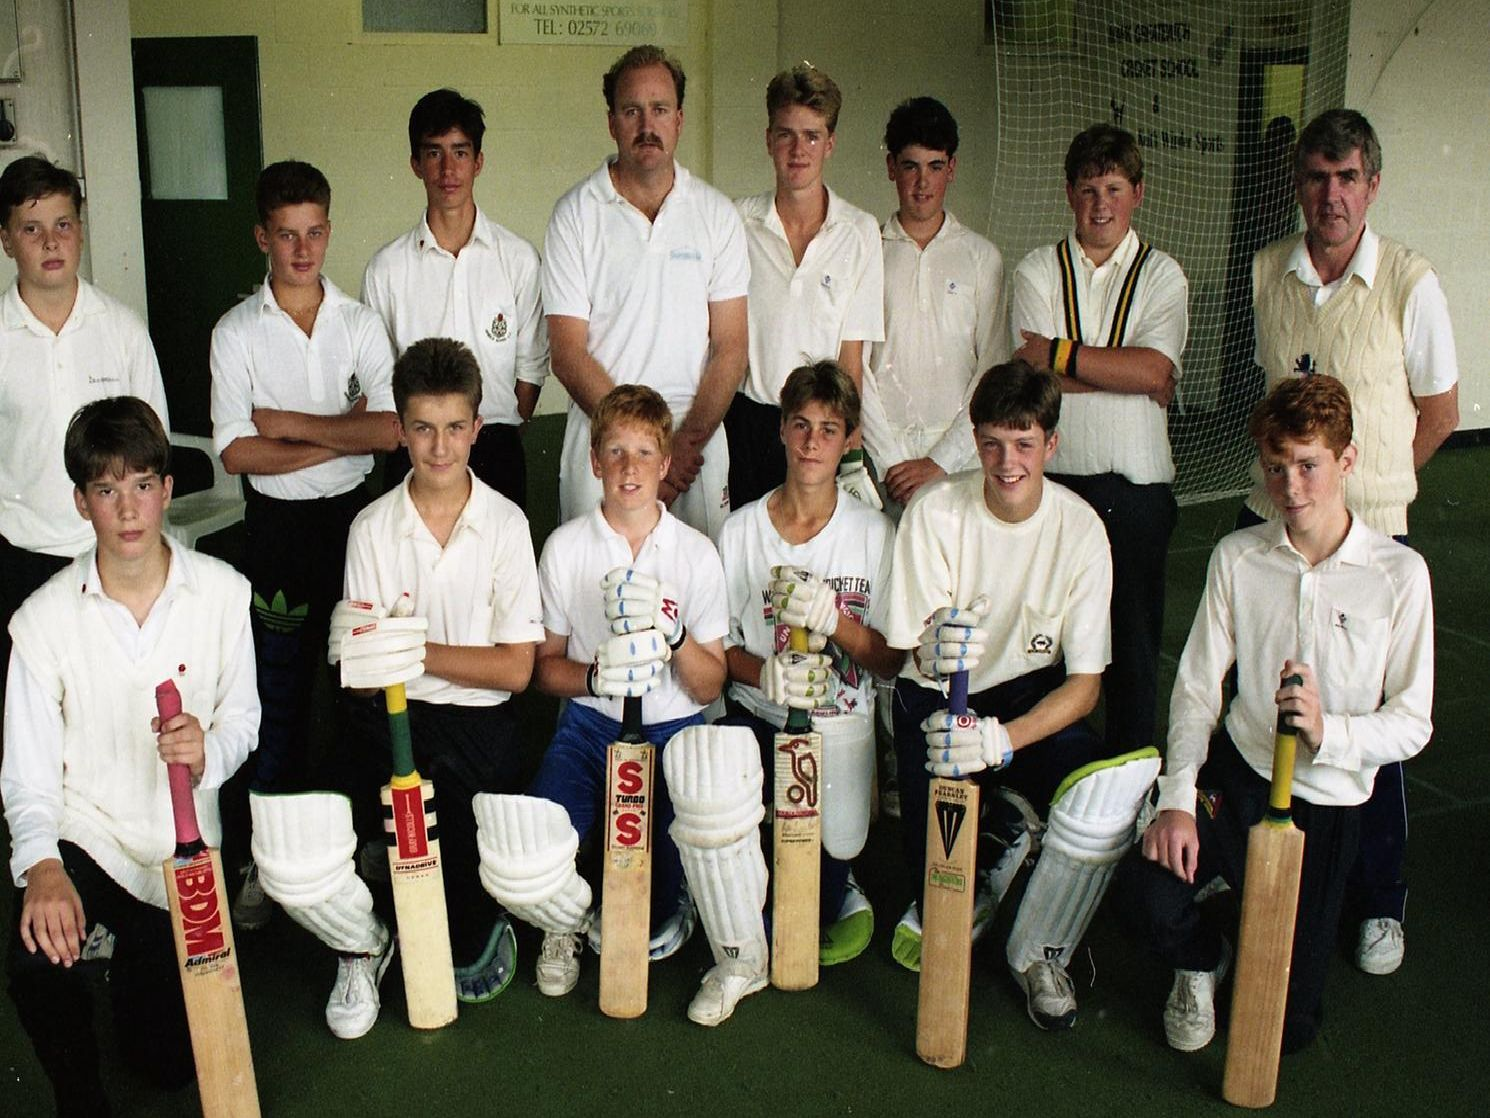 The recent Mark Greatbatch week-long coaching corse has been voted a huge hit. More than 20 youngsters attended the course held at Oyston Mill, Preston. The Kiwi Test star is pictured (back fourth left) with some of the youngsters and coach Keith Winder (back far right)